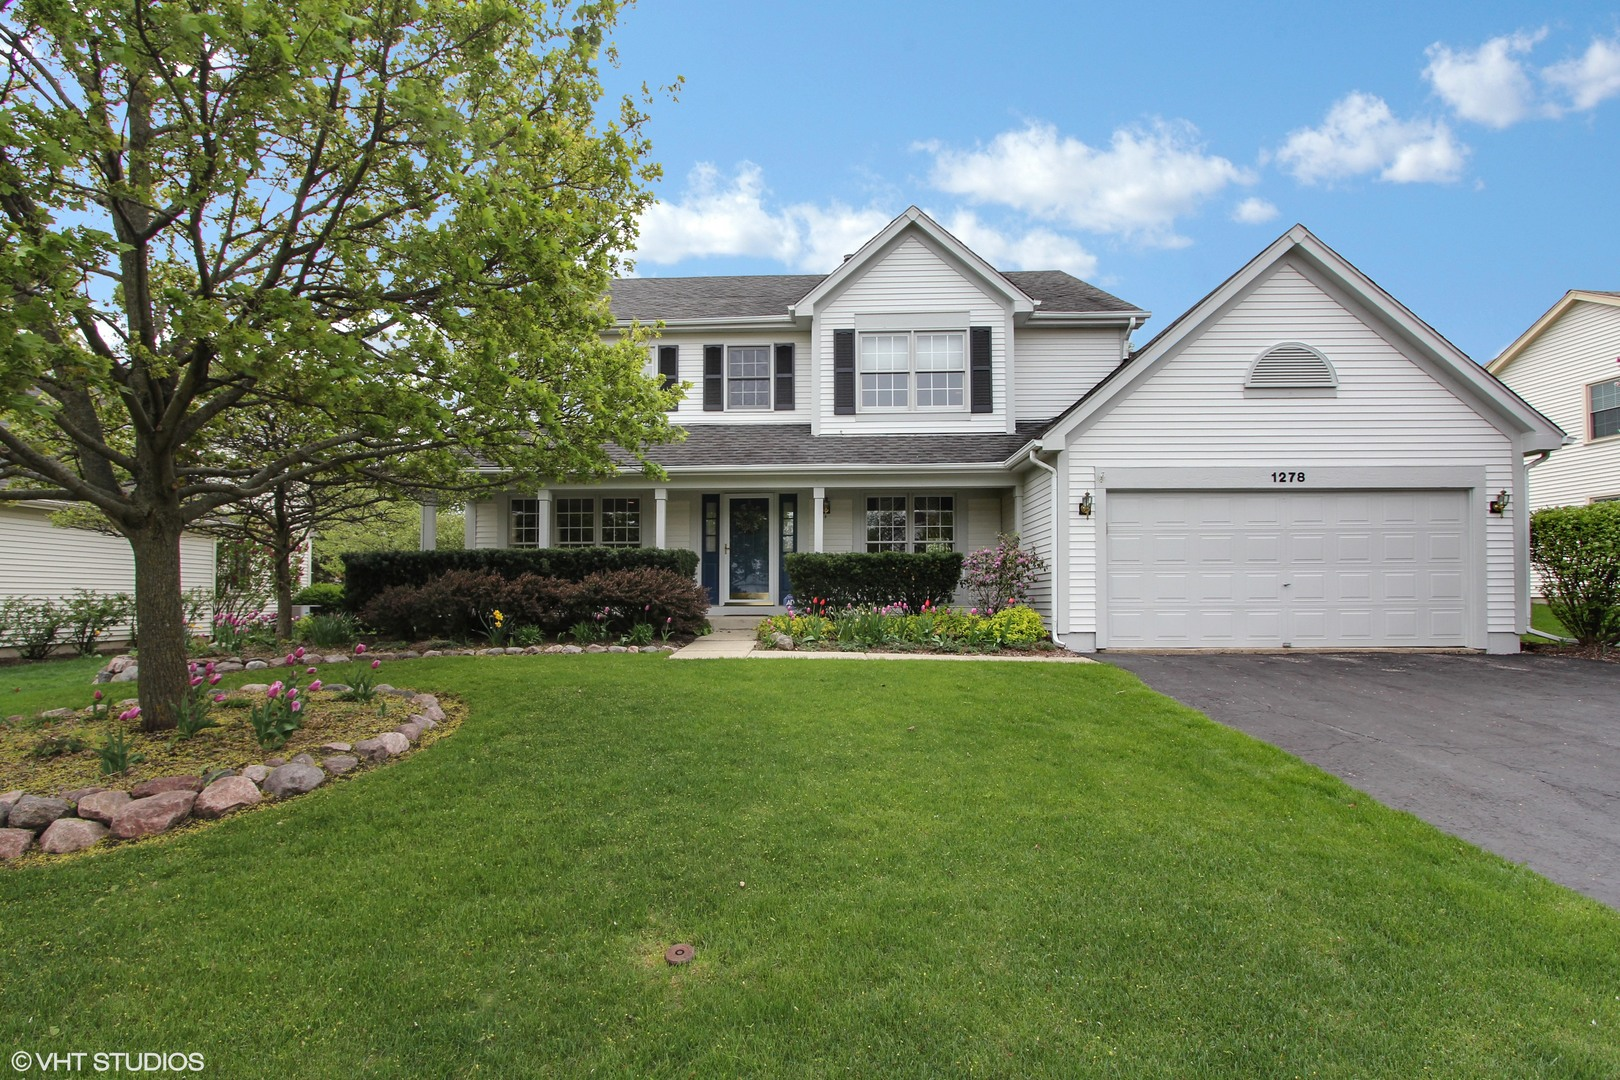 1278 Thorndale Lane, Lake Zurich in Lake County, IL 60047 Home for Sale